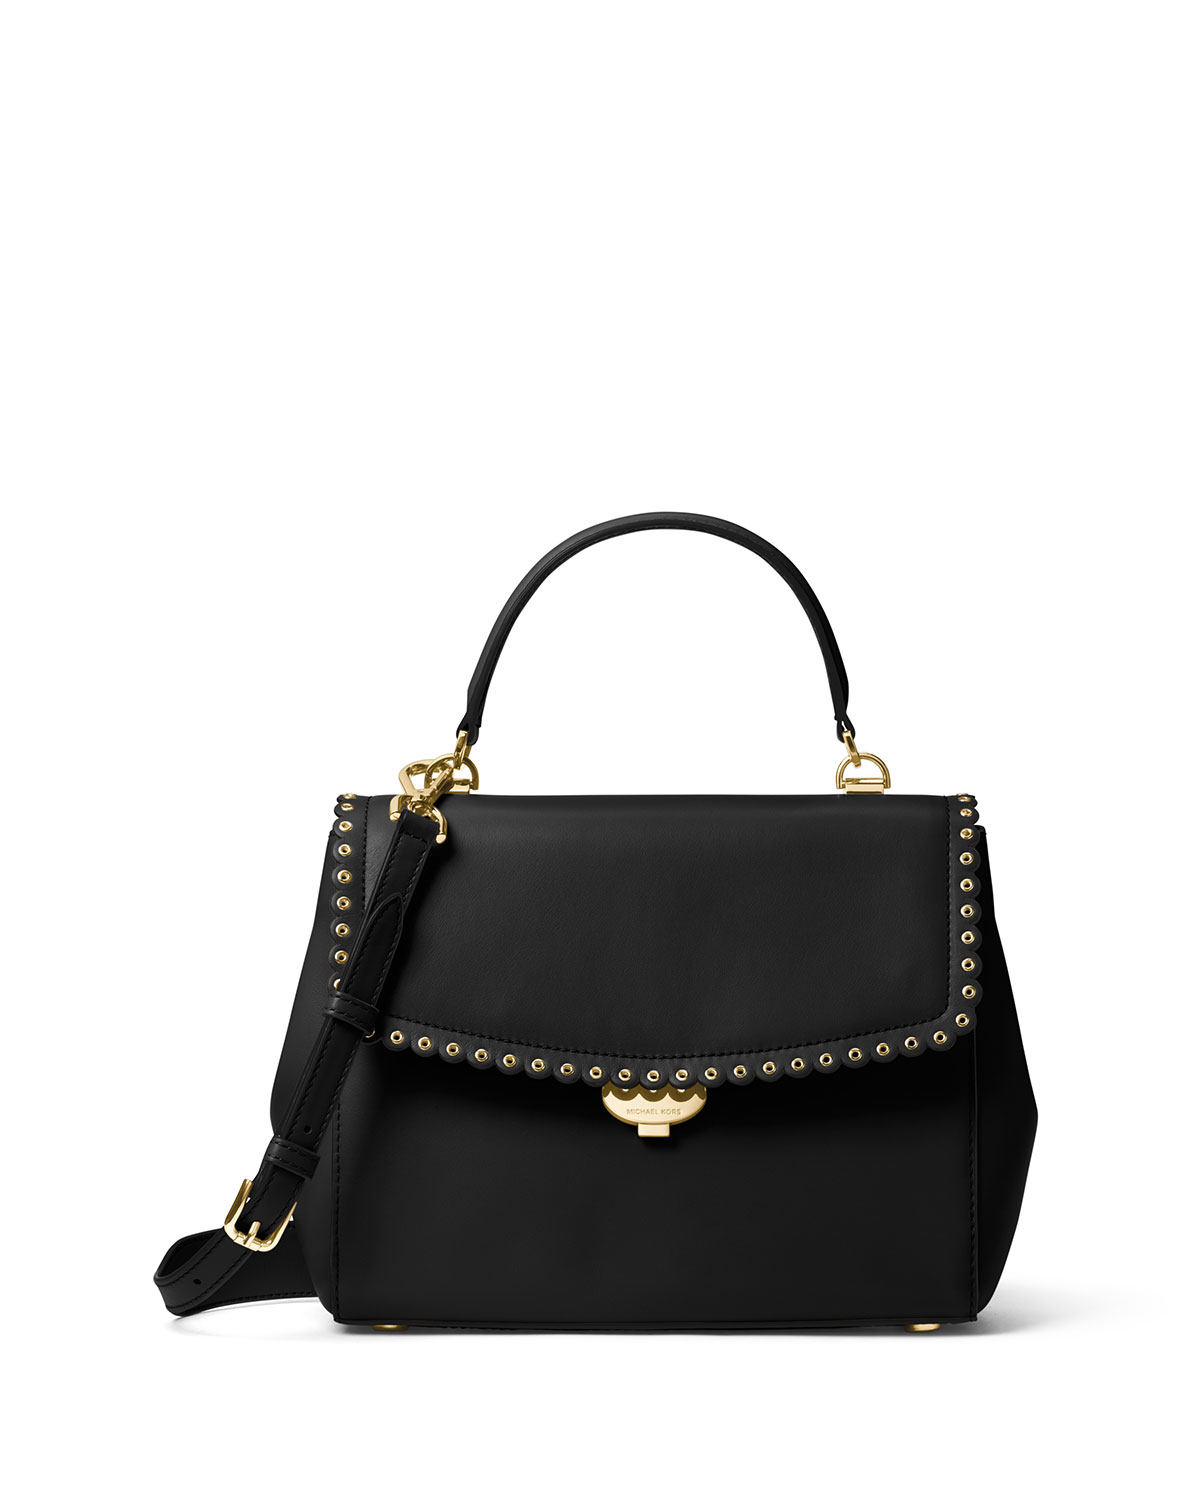 Ava Medium Saffiano Satchel Bag, Black